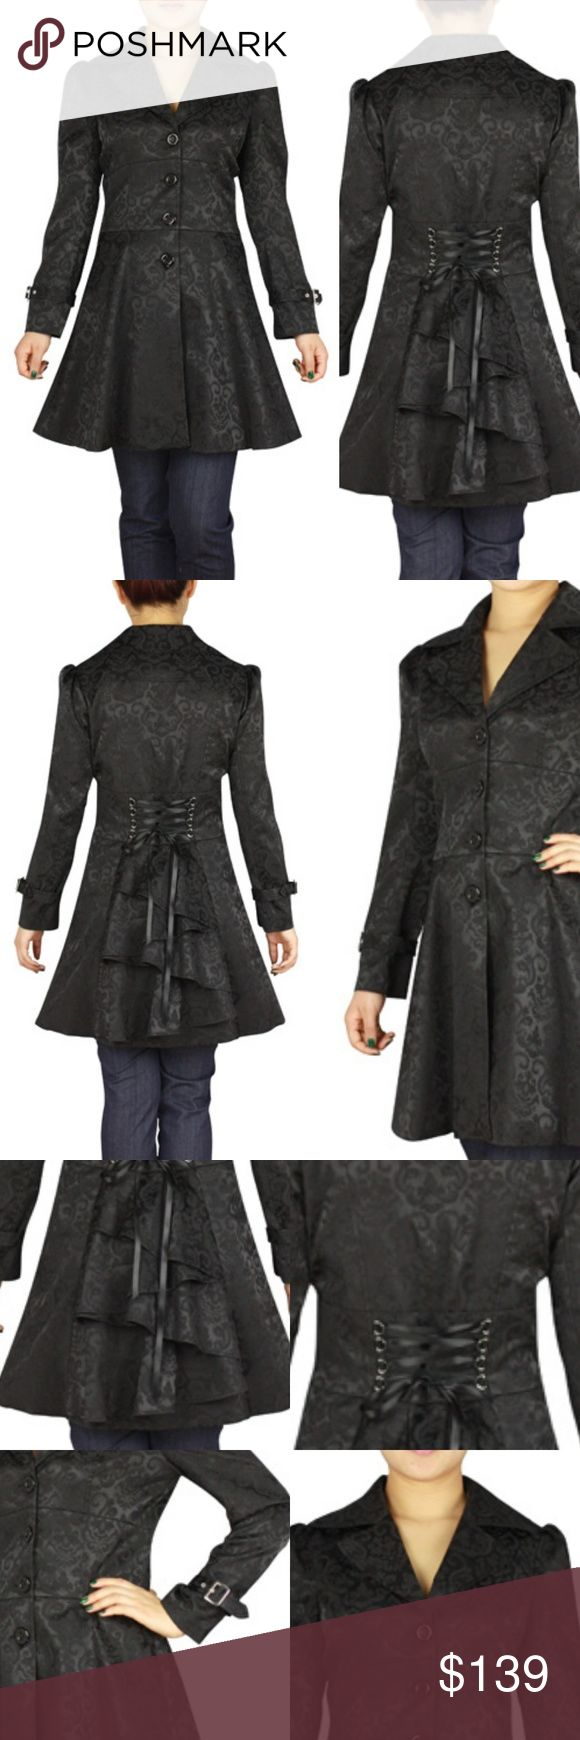 Lace Up Back Ruffle Jacket Coat Gothic Punk Black Lace Up Back Ruffle Coat Jacke...